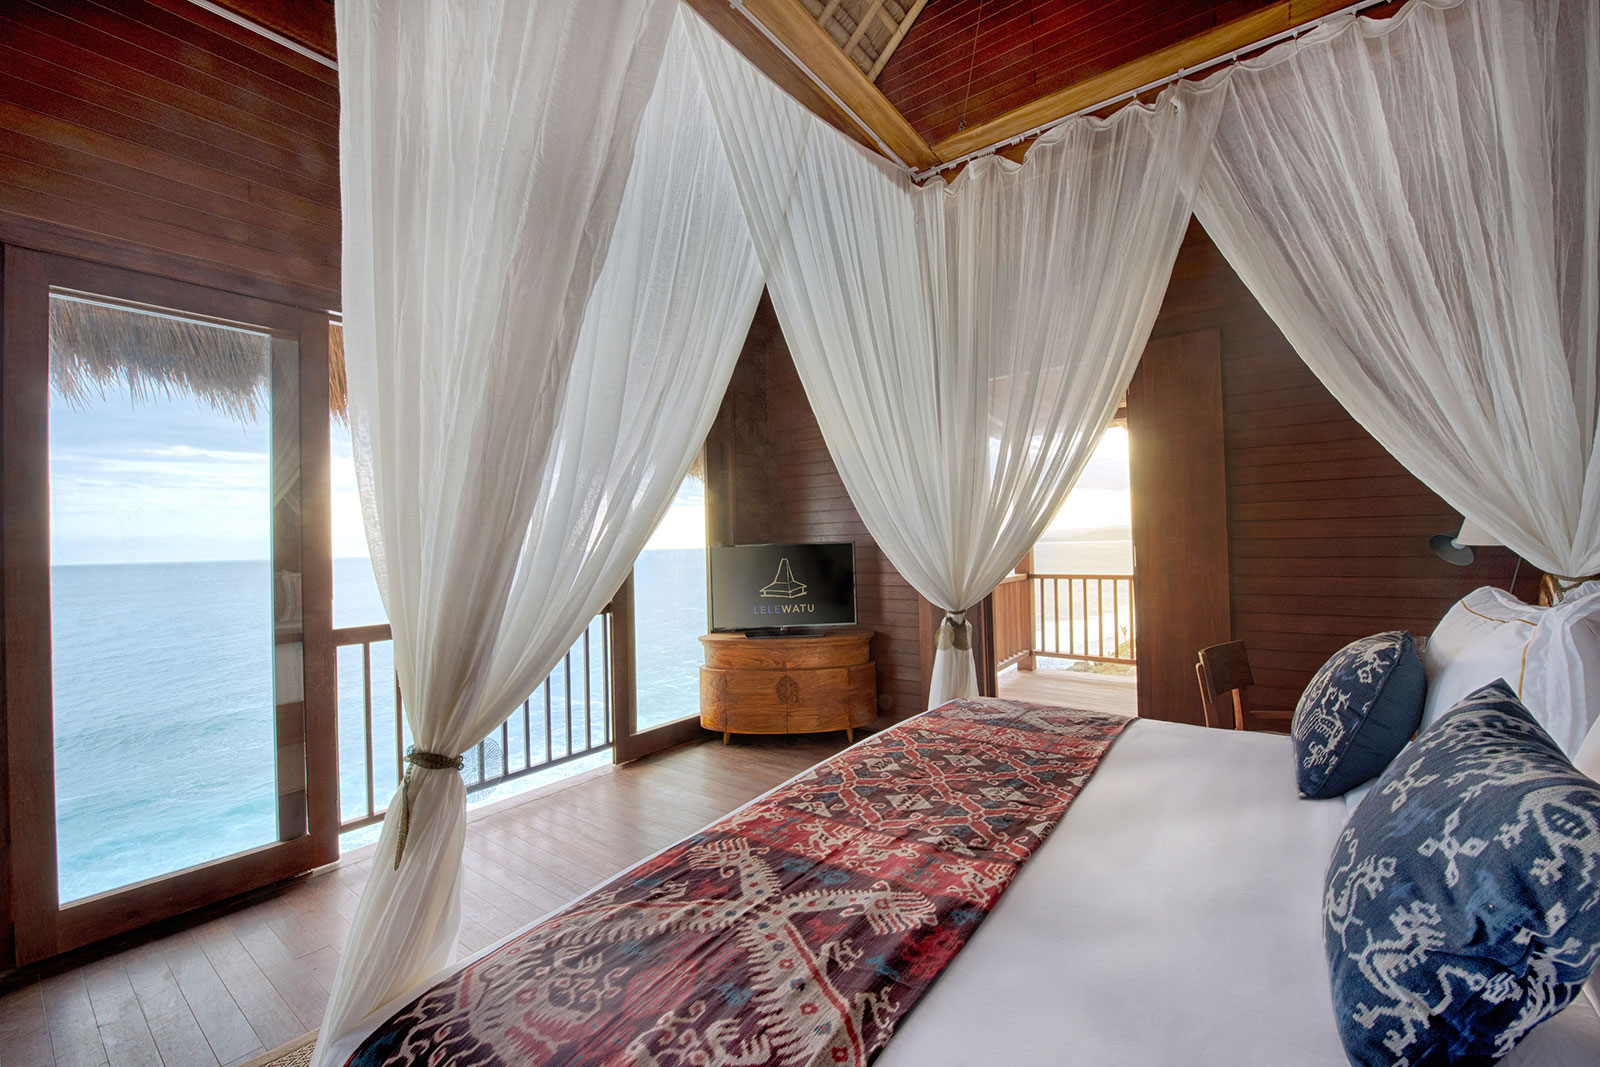 Lelewatu Sumba - One Bedroom Royal Honeymoon Villa